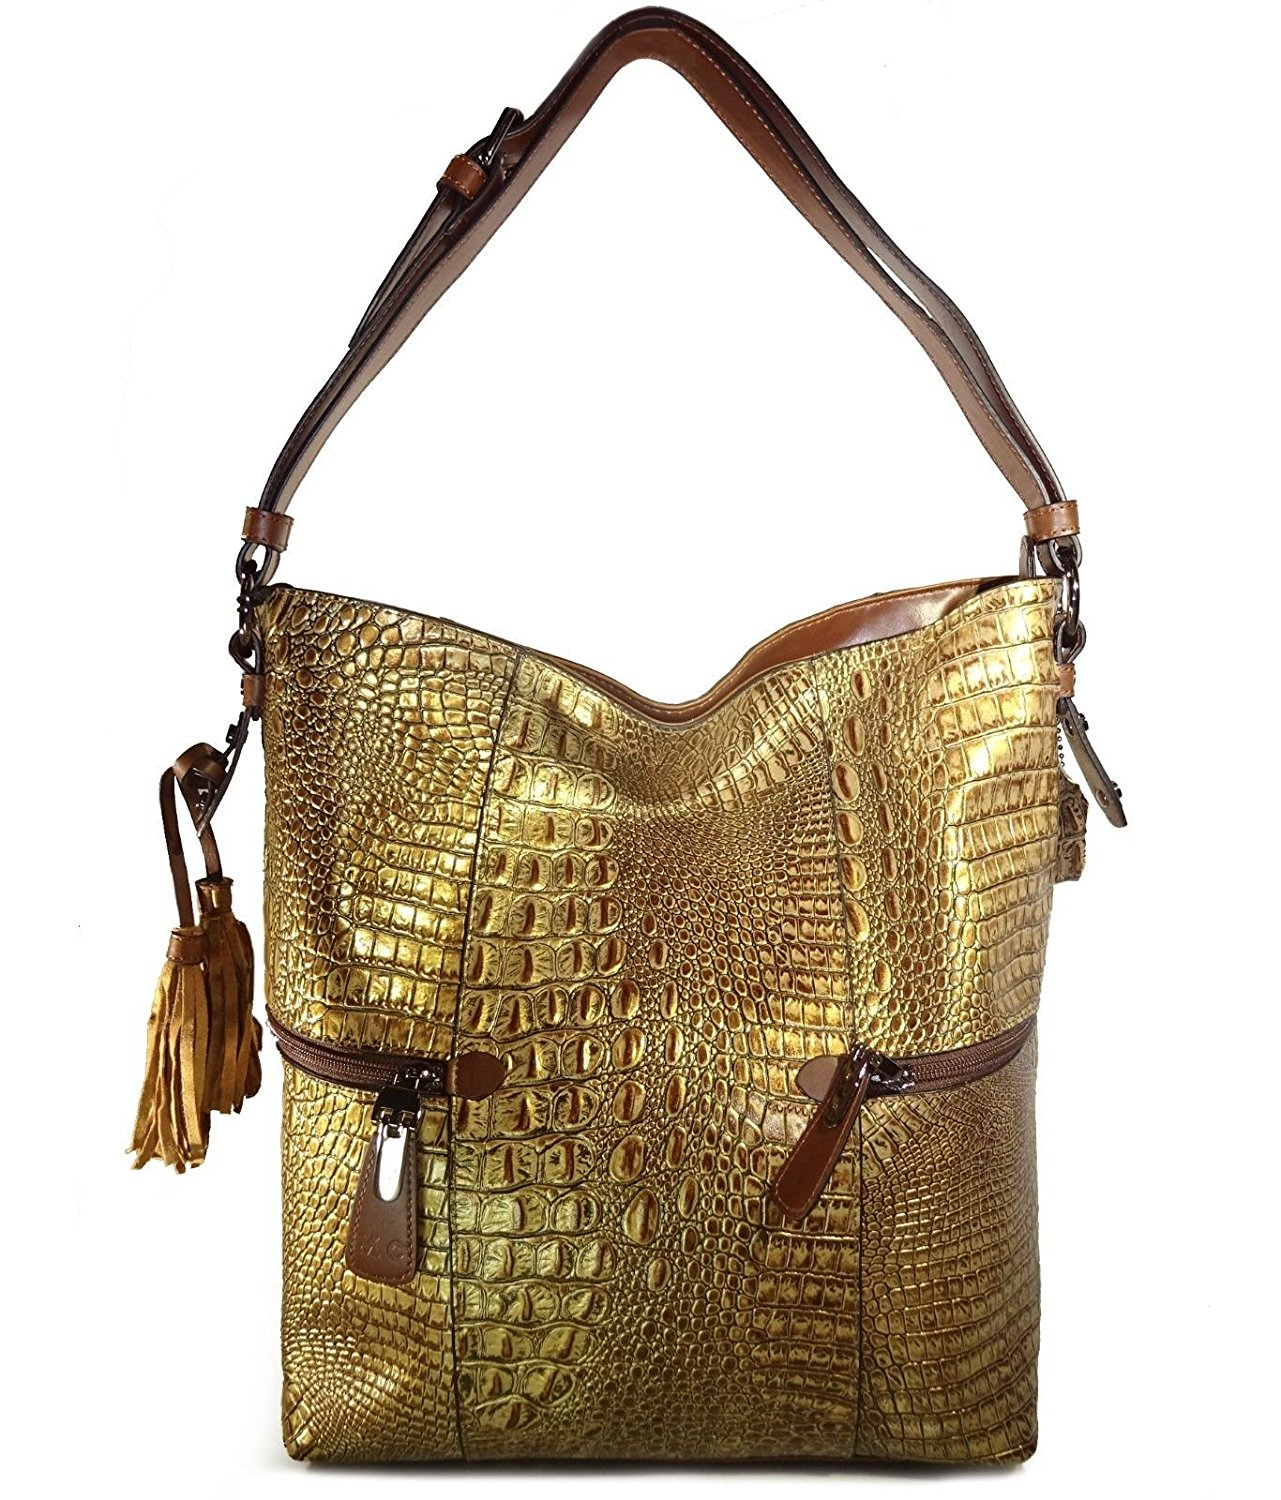 097570f0247d Stylish Ladies Bags Online India- Fenix Toulouse Handball